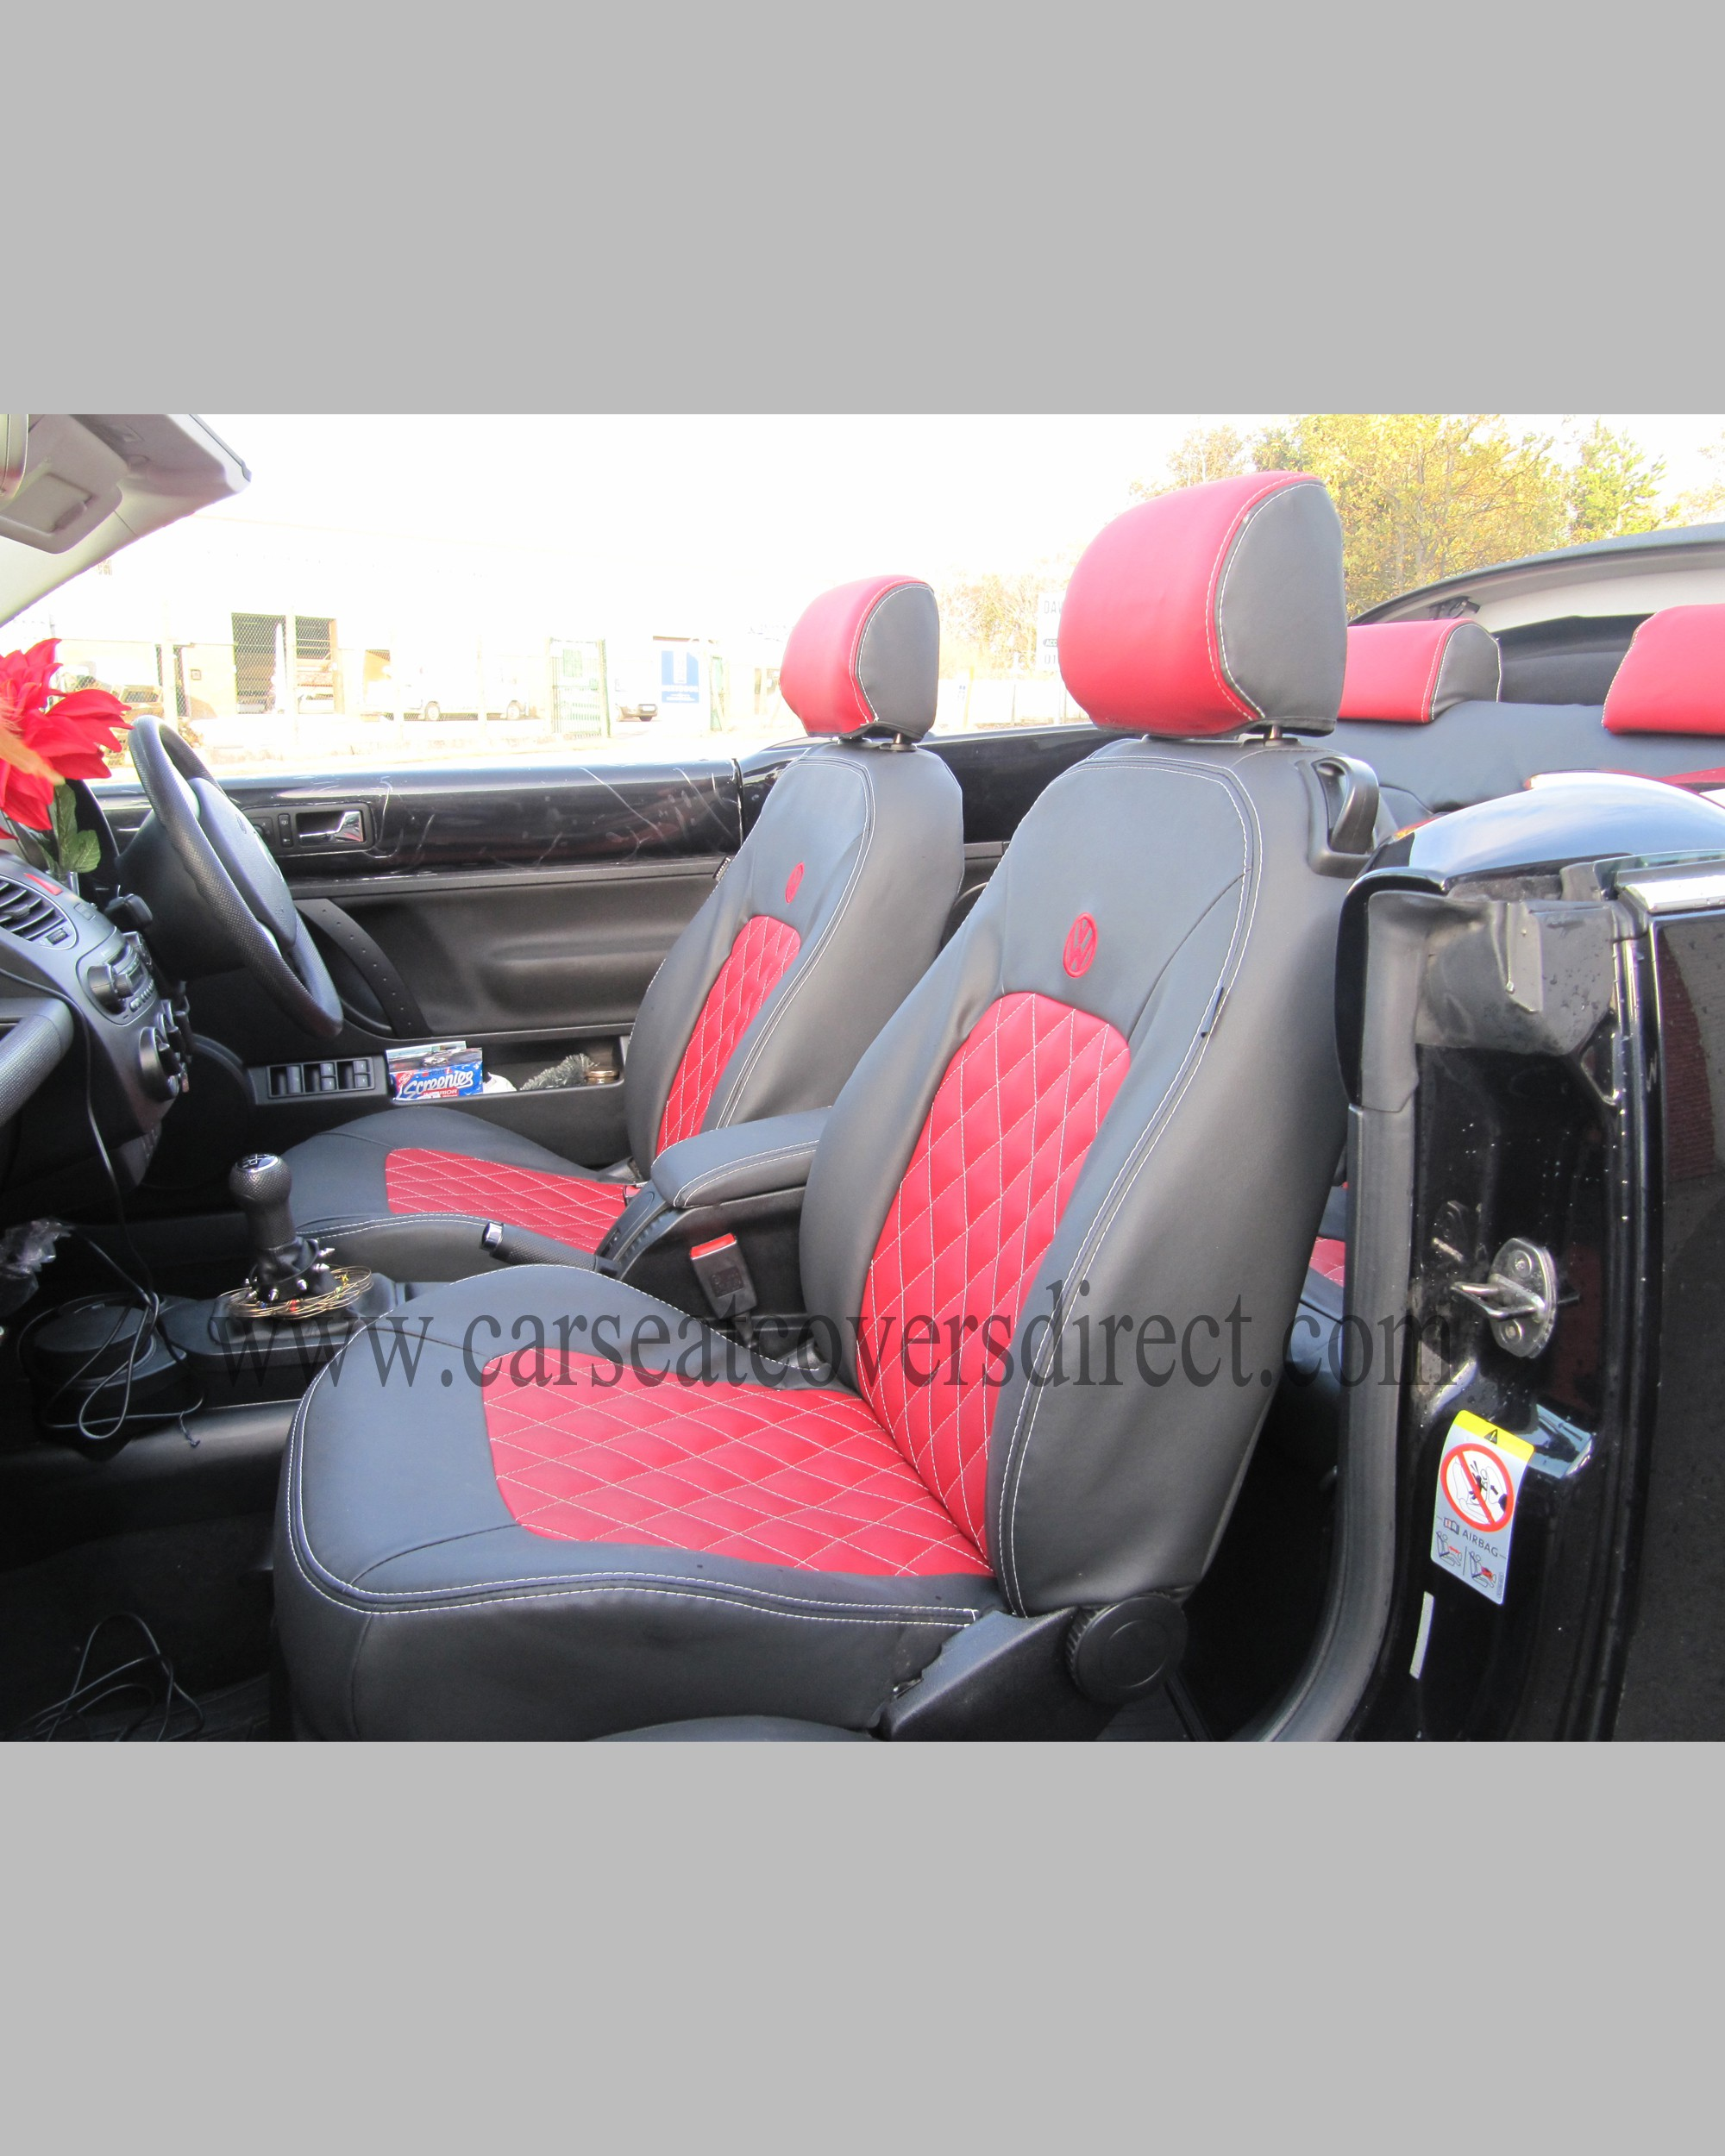 vw beetle tailored car tailored seat covers. Black Bedroom Furniture Sets. Home Design Ideas